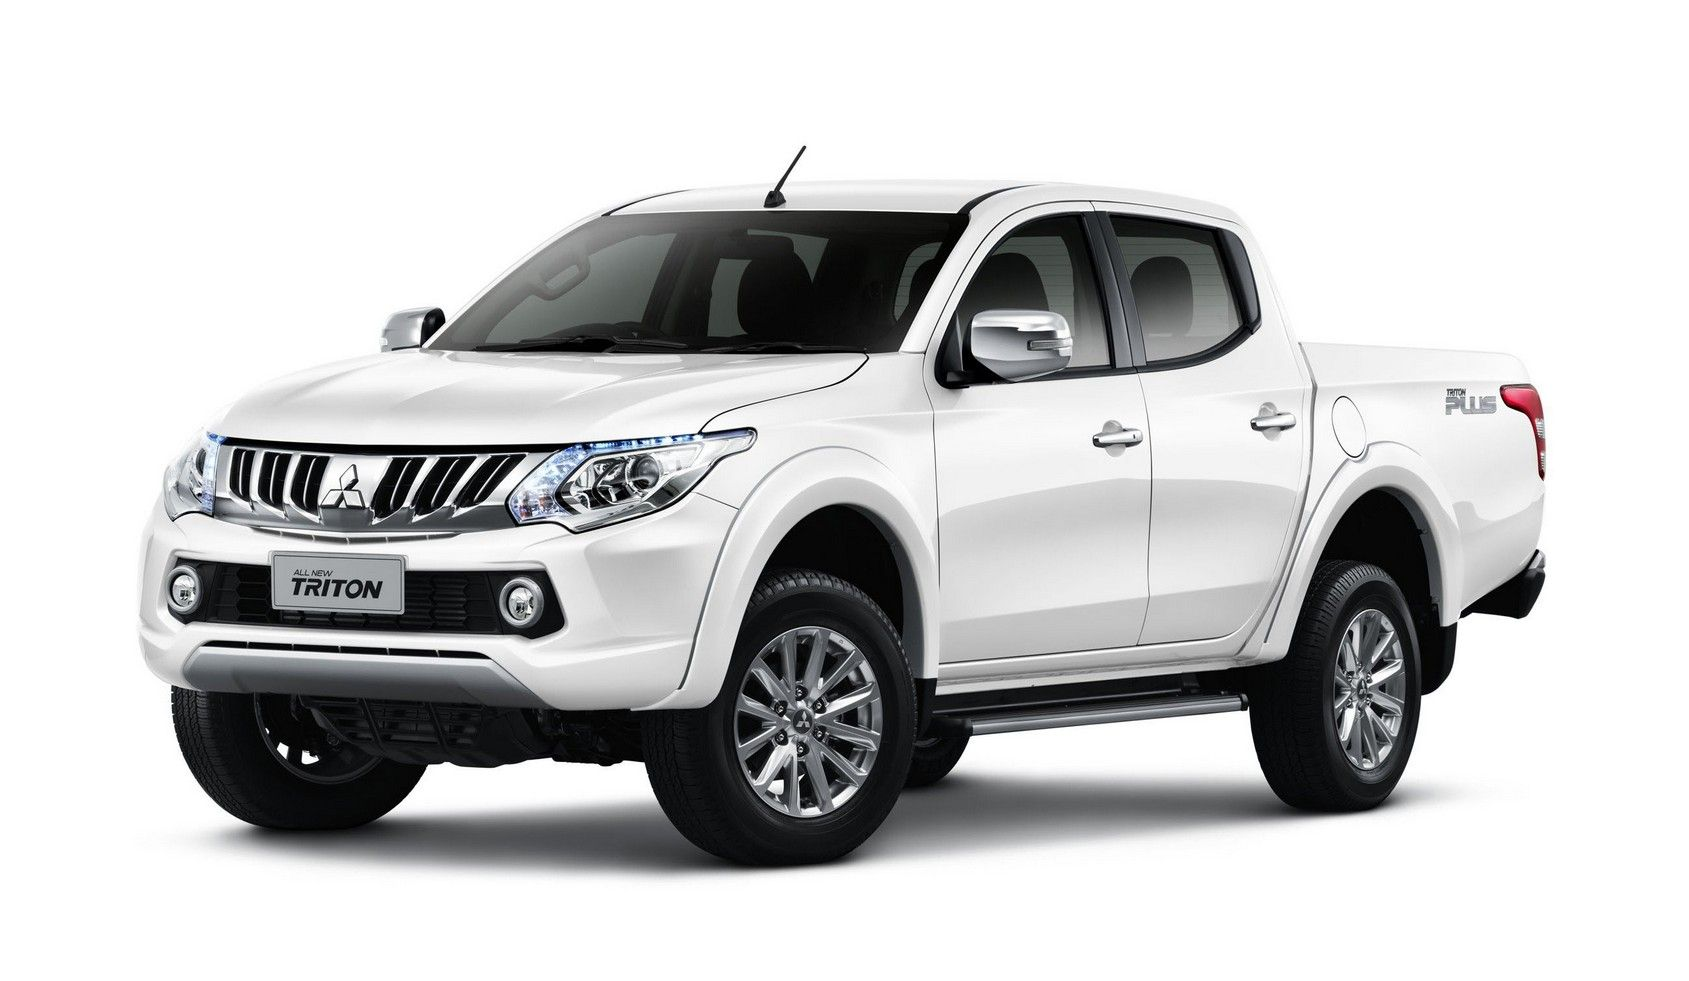 2019 Mitsubishi Triton Review Specs Price Mitsubishi Triton A Reduced Pickup Truck Produced By Mitsubishi Motors In Japan Was Mobil Barang Pindahan Kereta